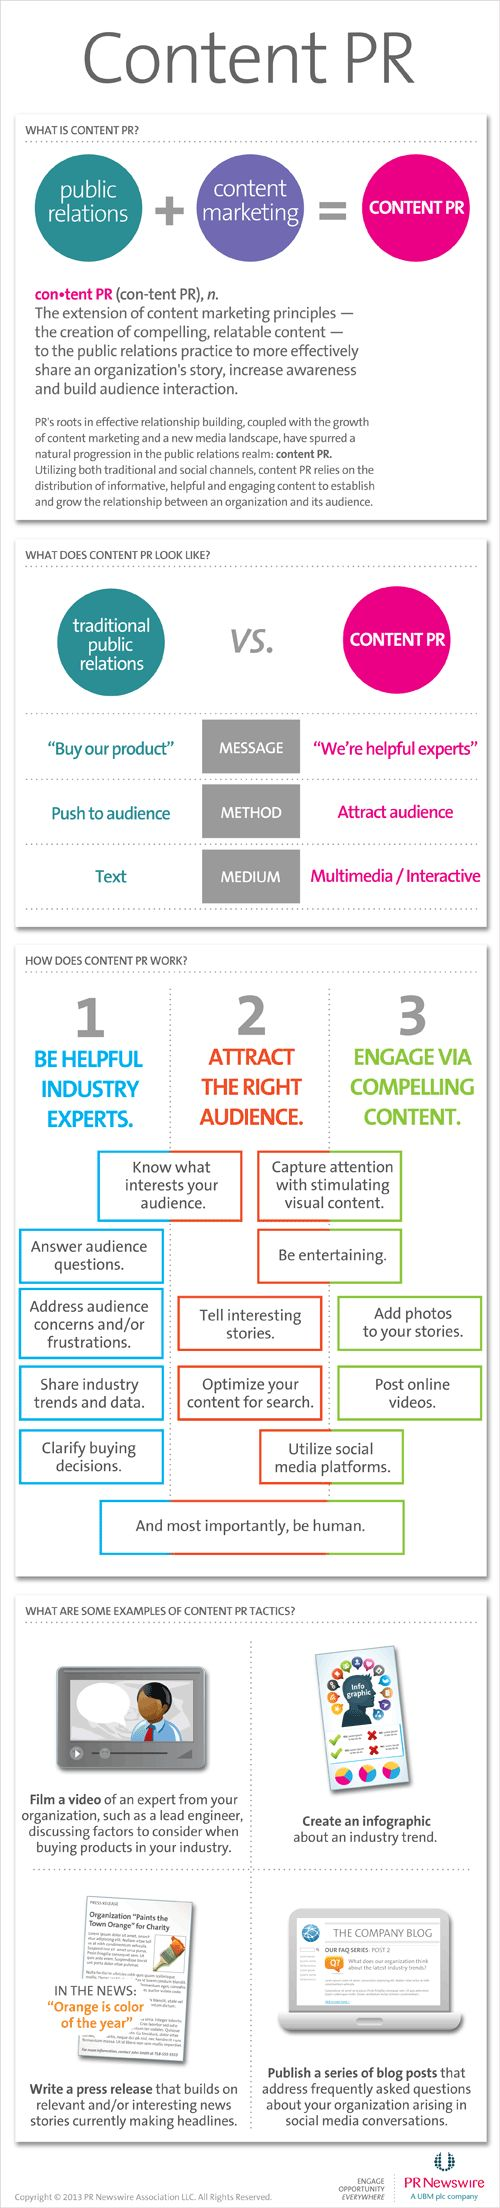 What is Content PR?